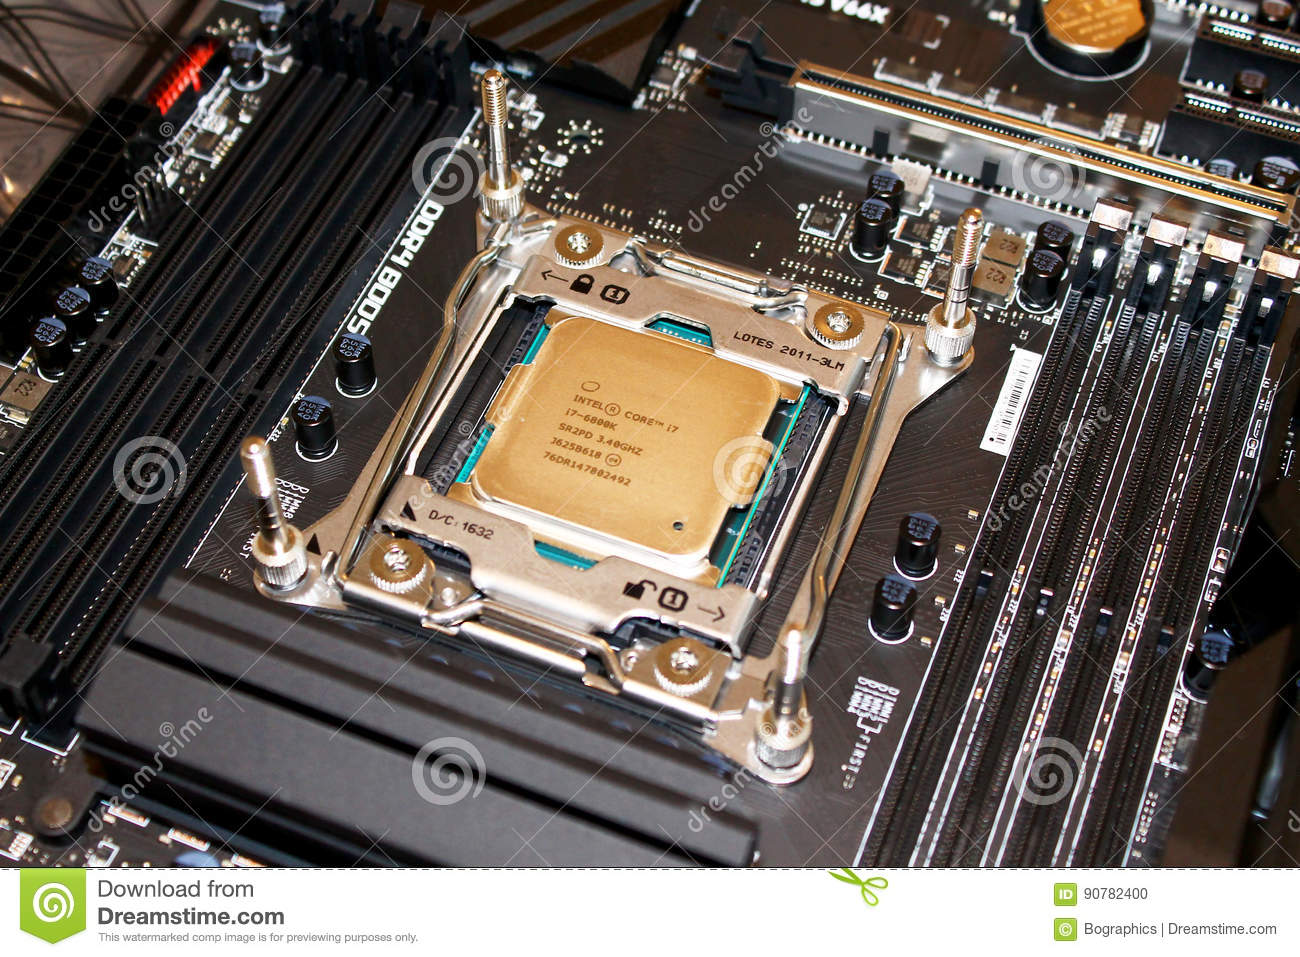 Computer processor installed on motherboard